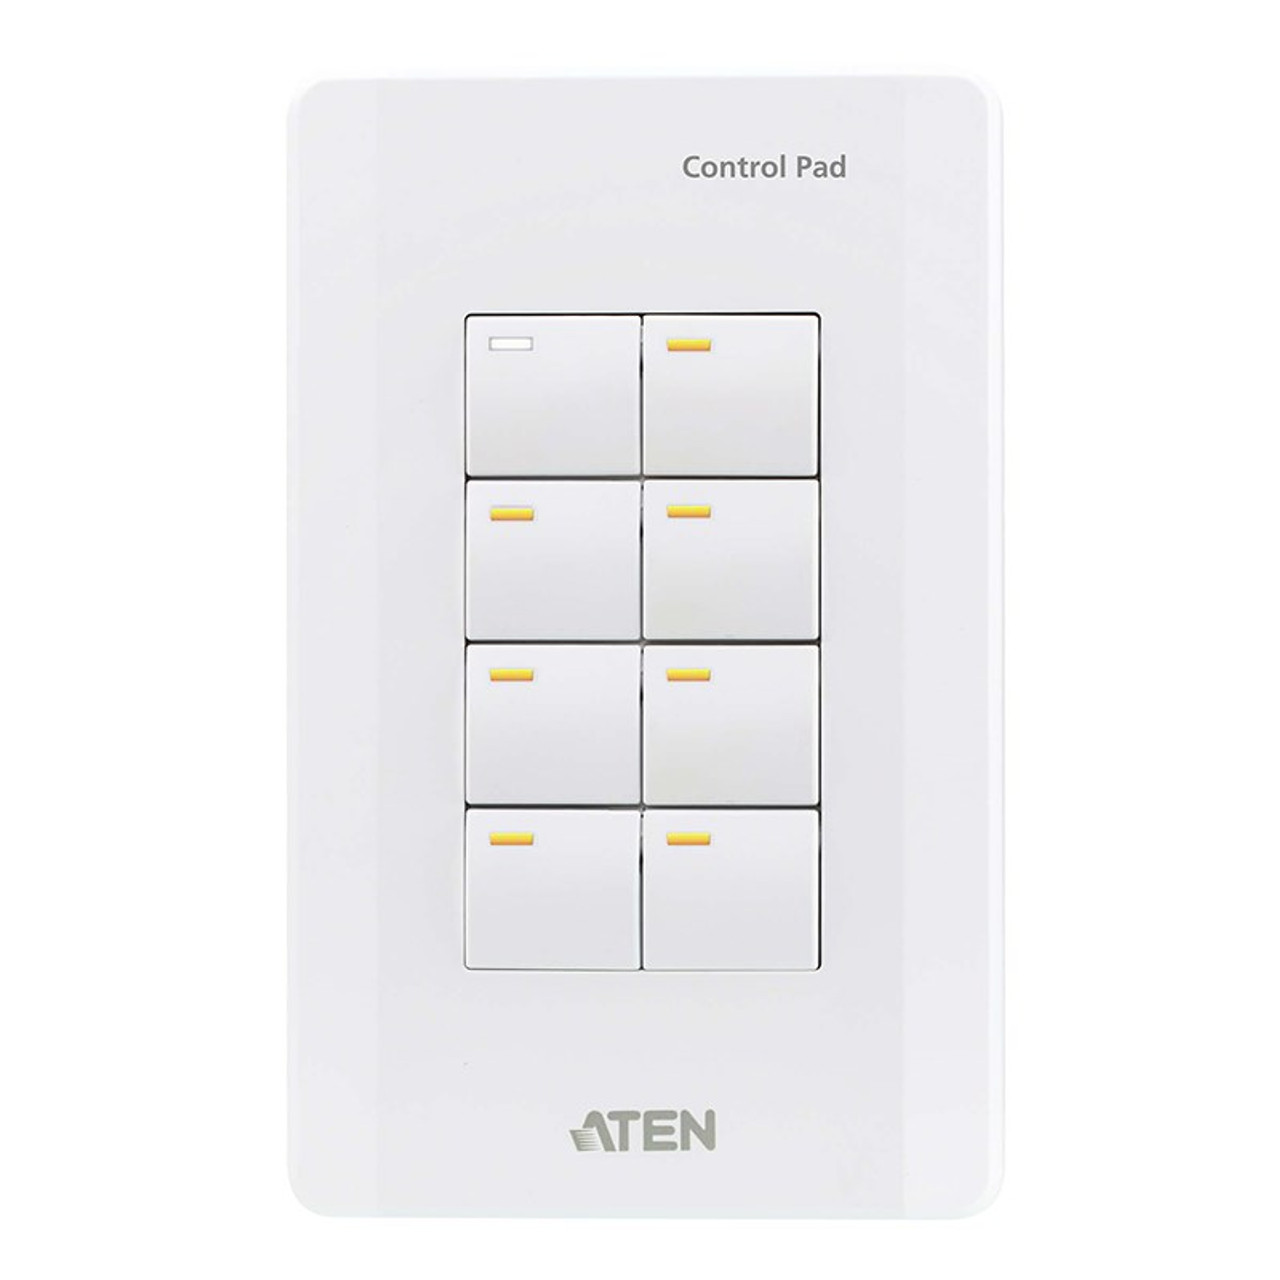 Image for ATEN VK0100 8-Button All-in-One Management Control Pad CX Computer Superstore